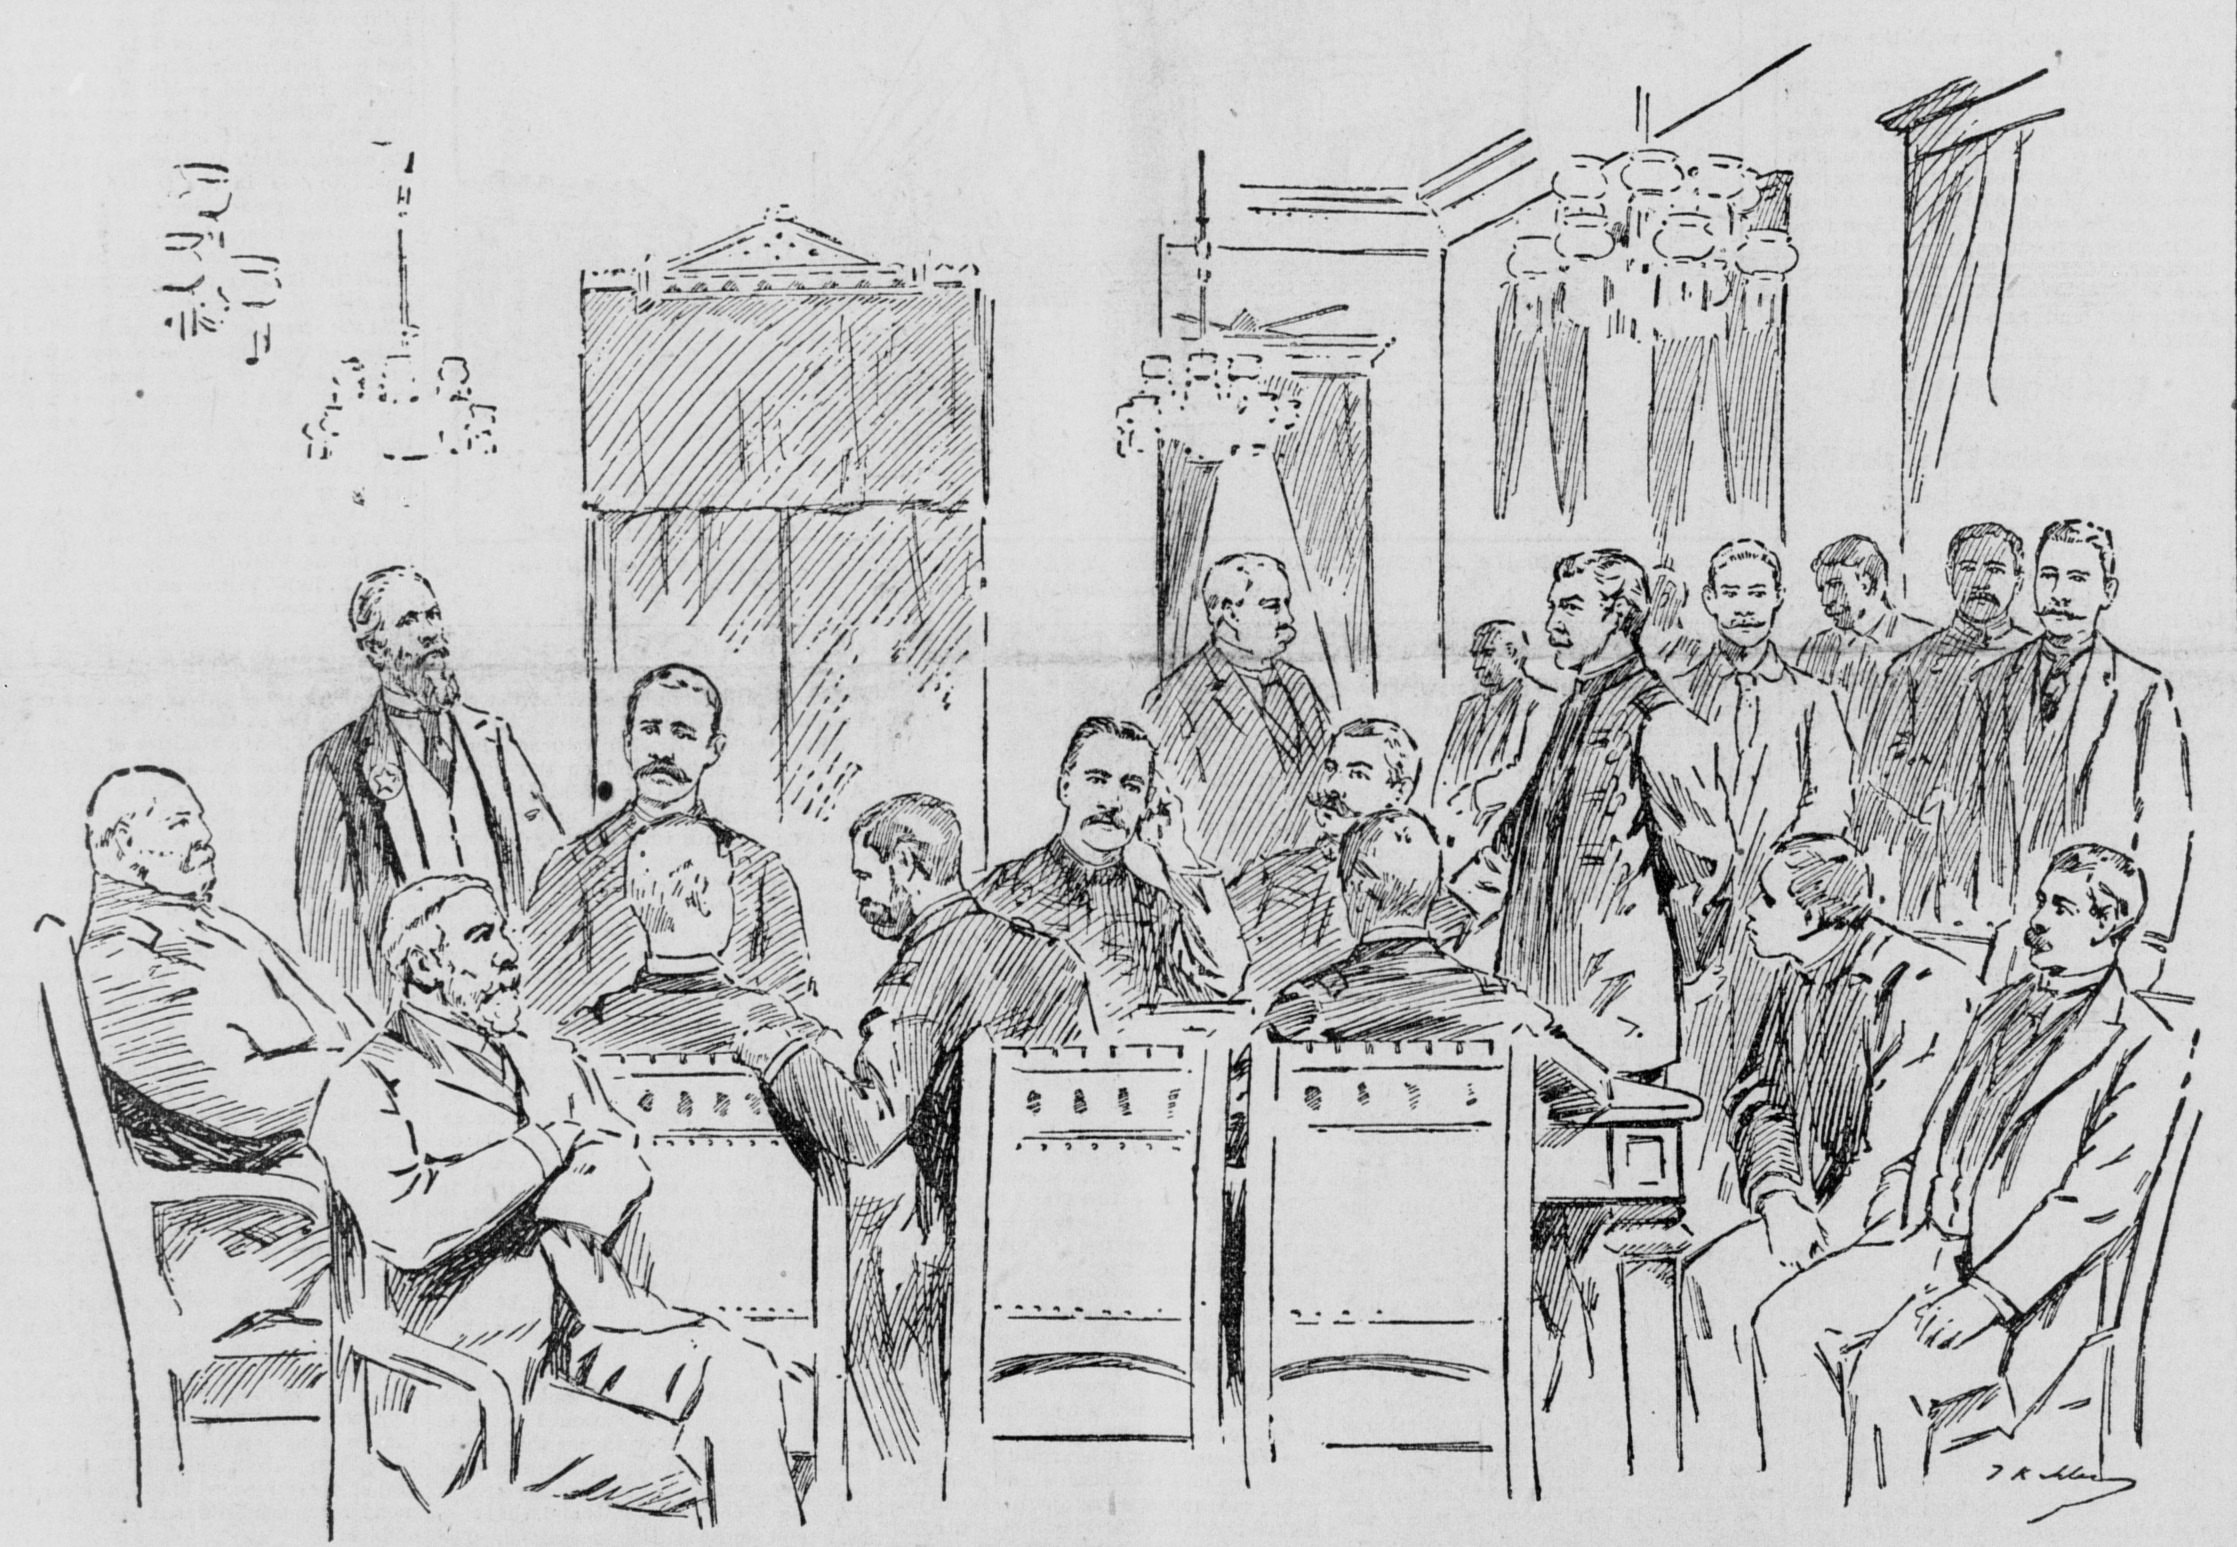 men at table in military uniforms, others standing